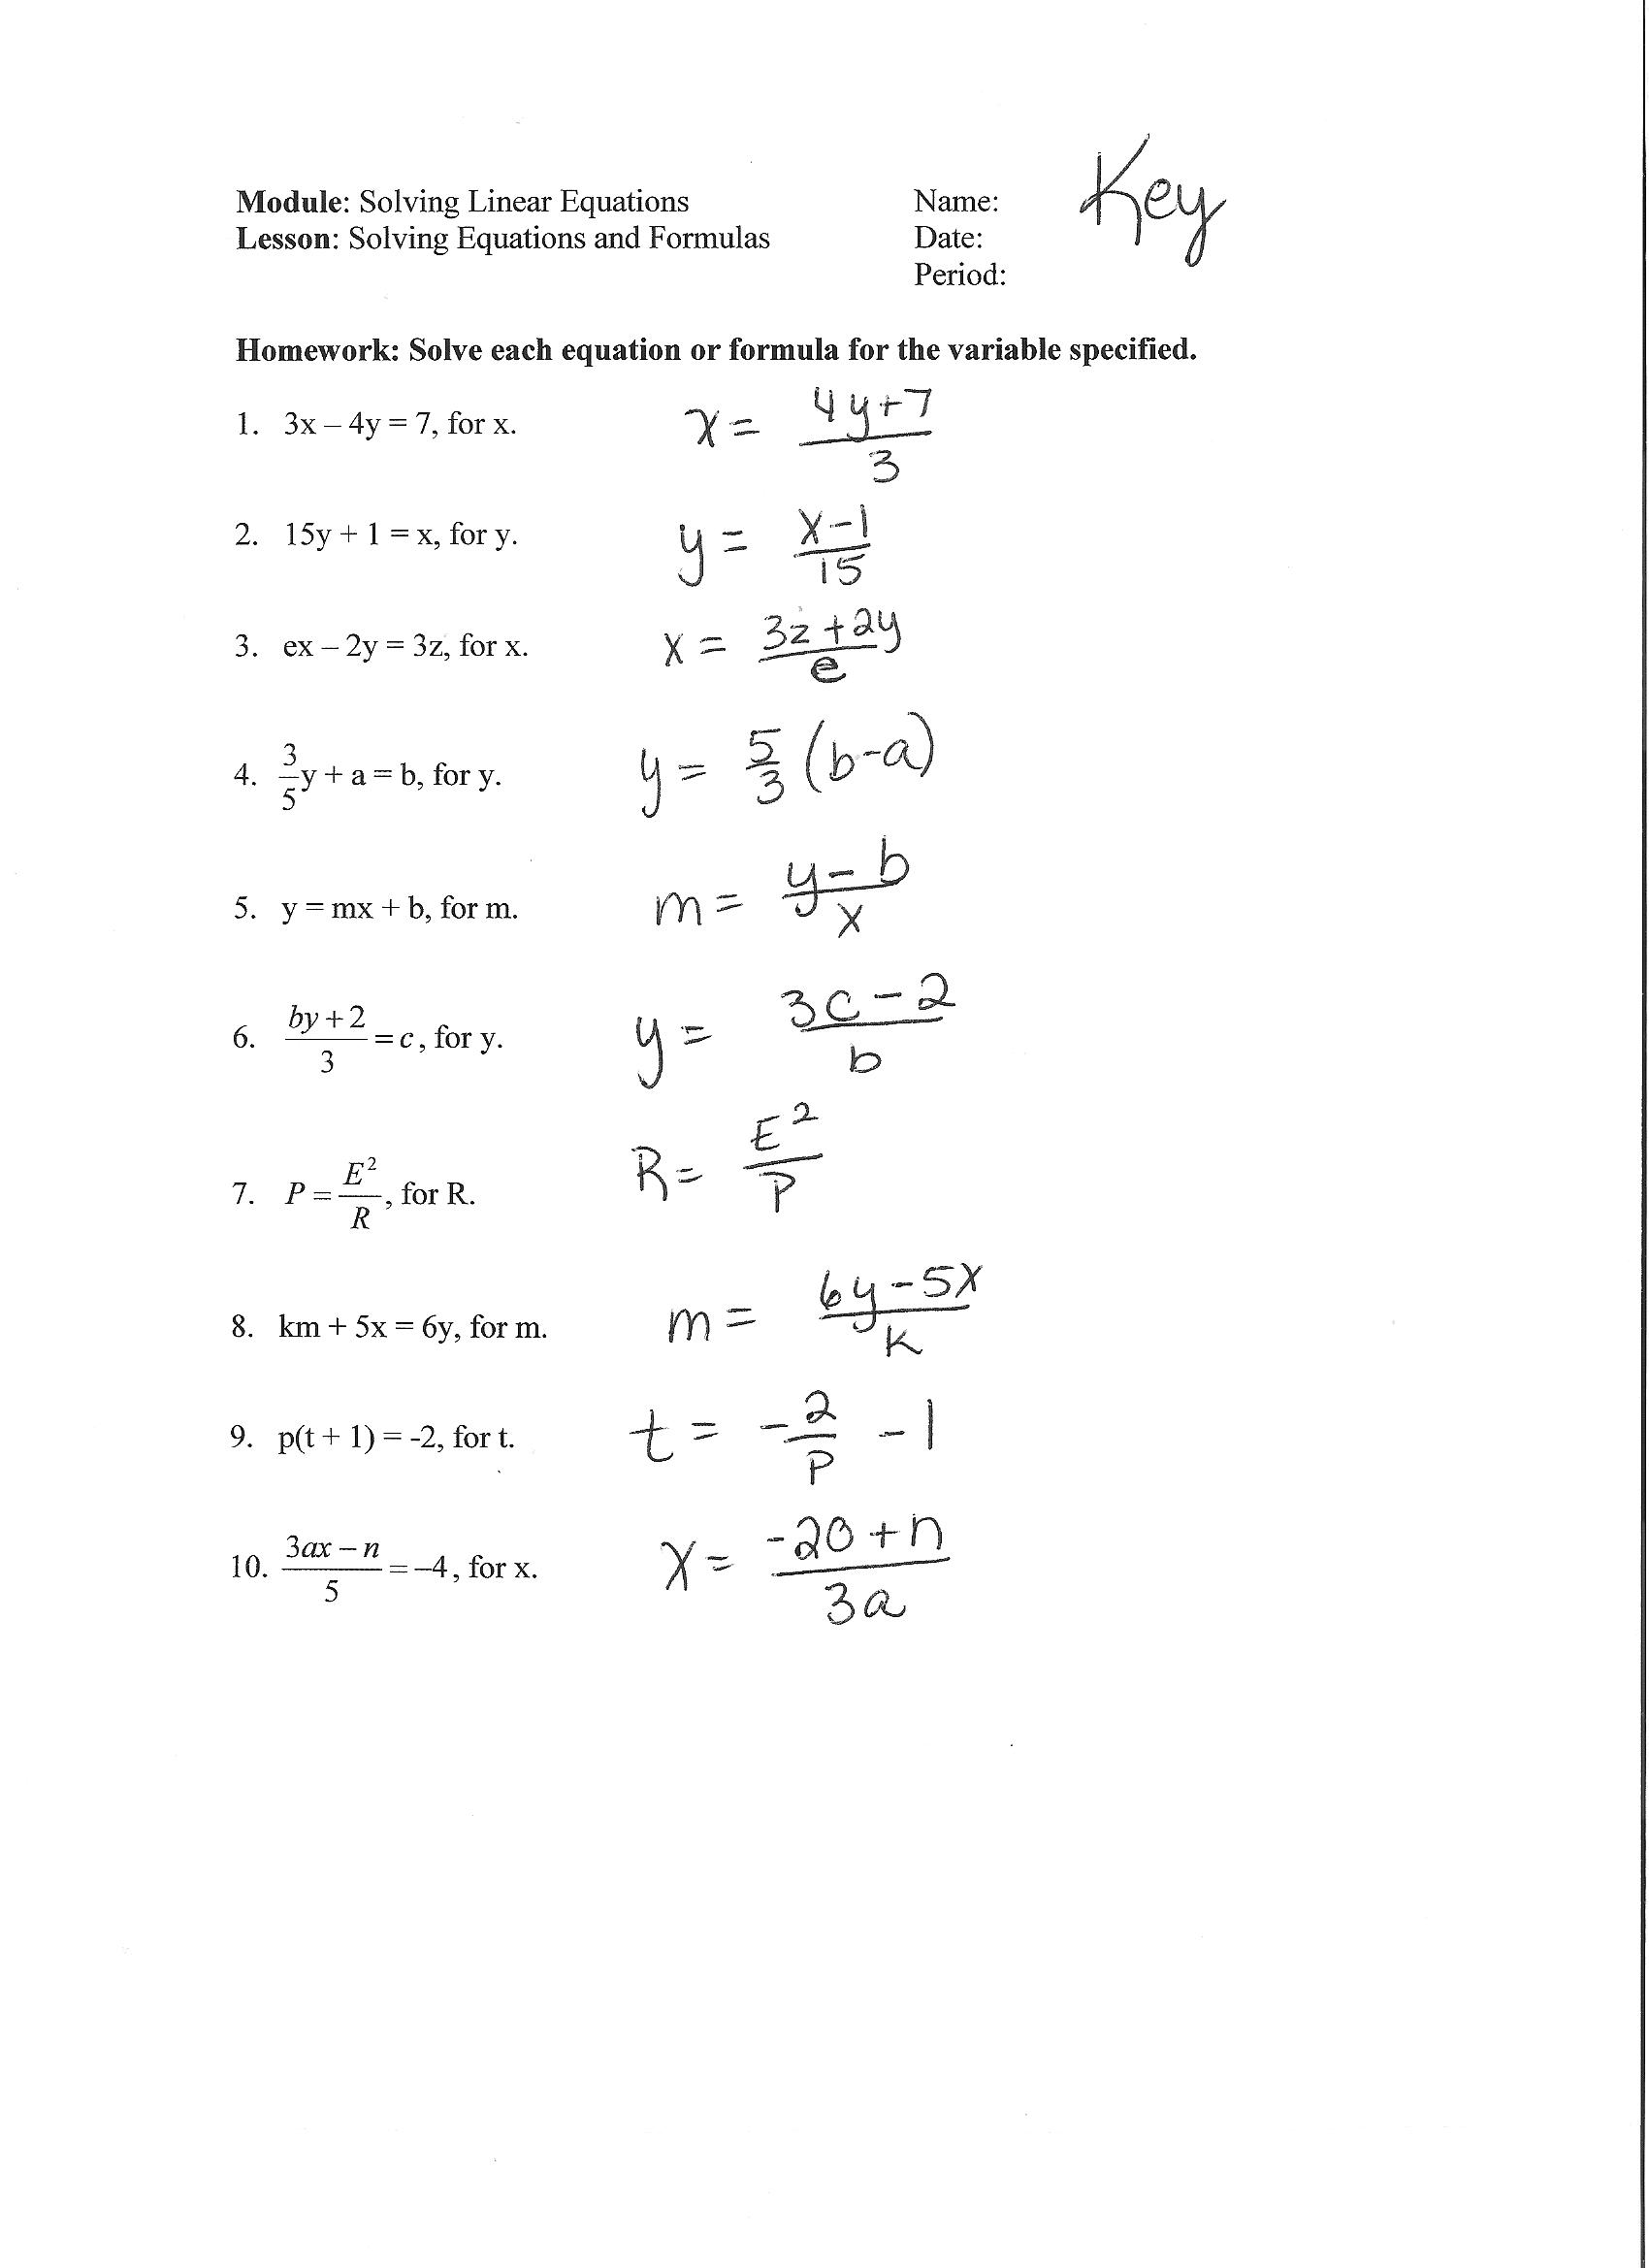 Worksheets Solving Literal Equations Worksheet teacher sheila mitchell content area algebra i grade level 9 date day overviewannotation this lesson contains a powe